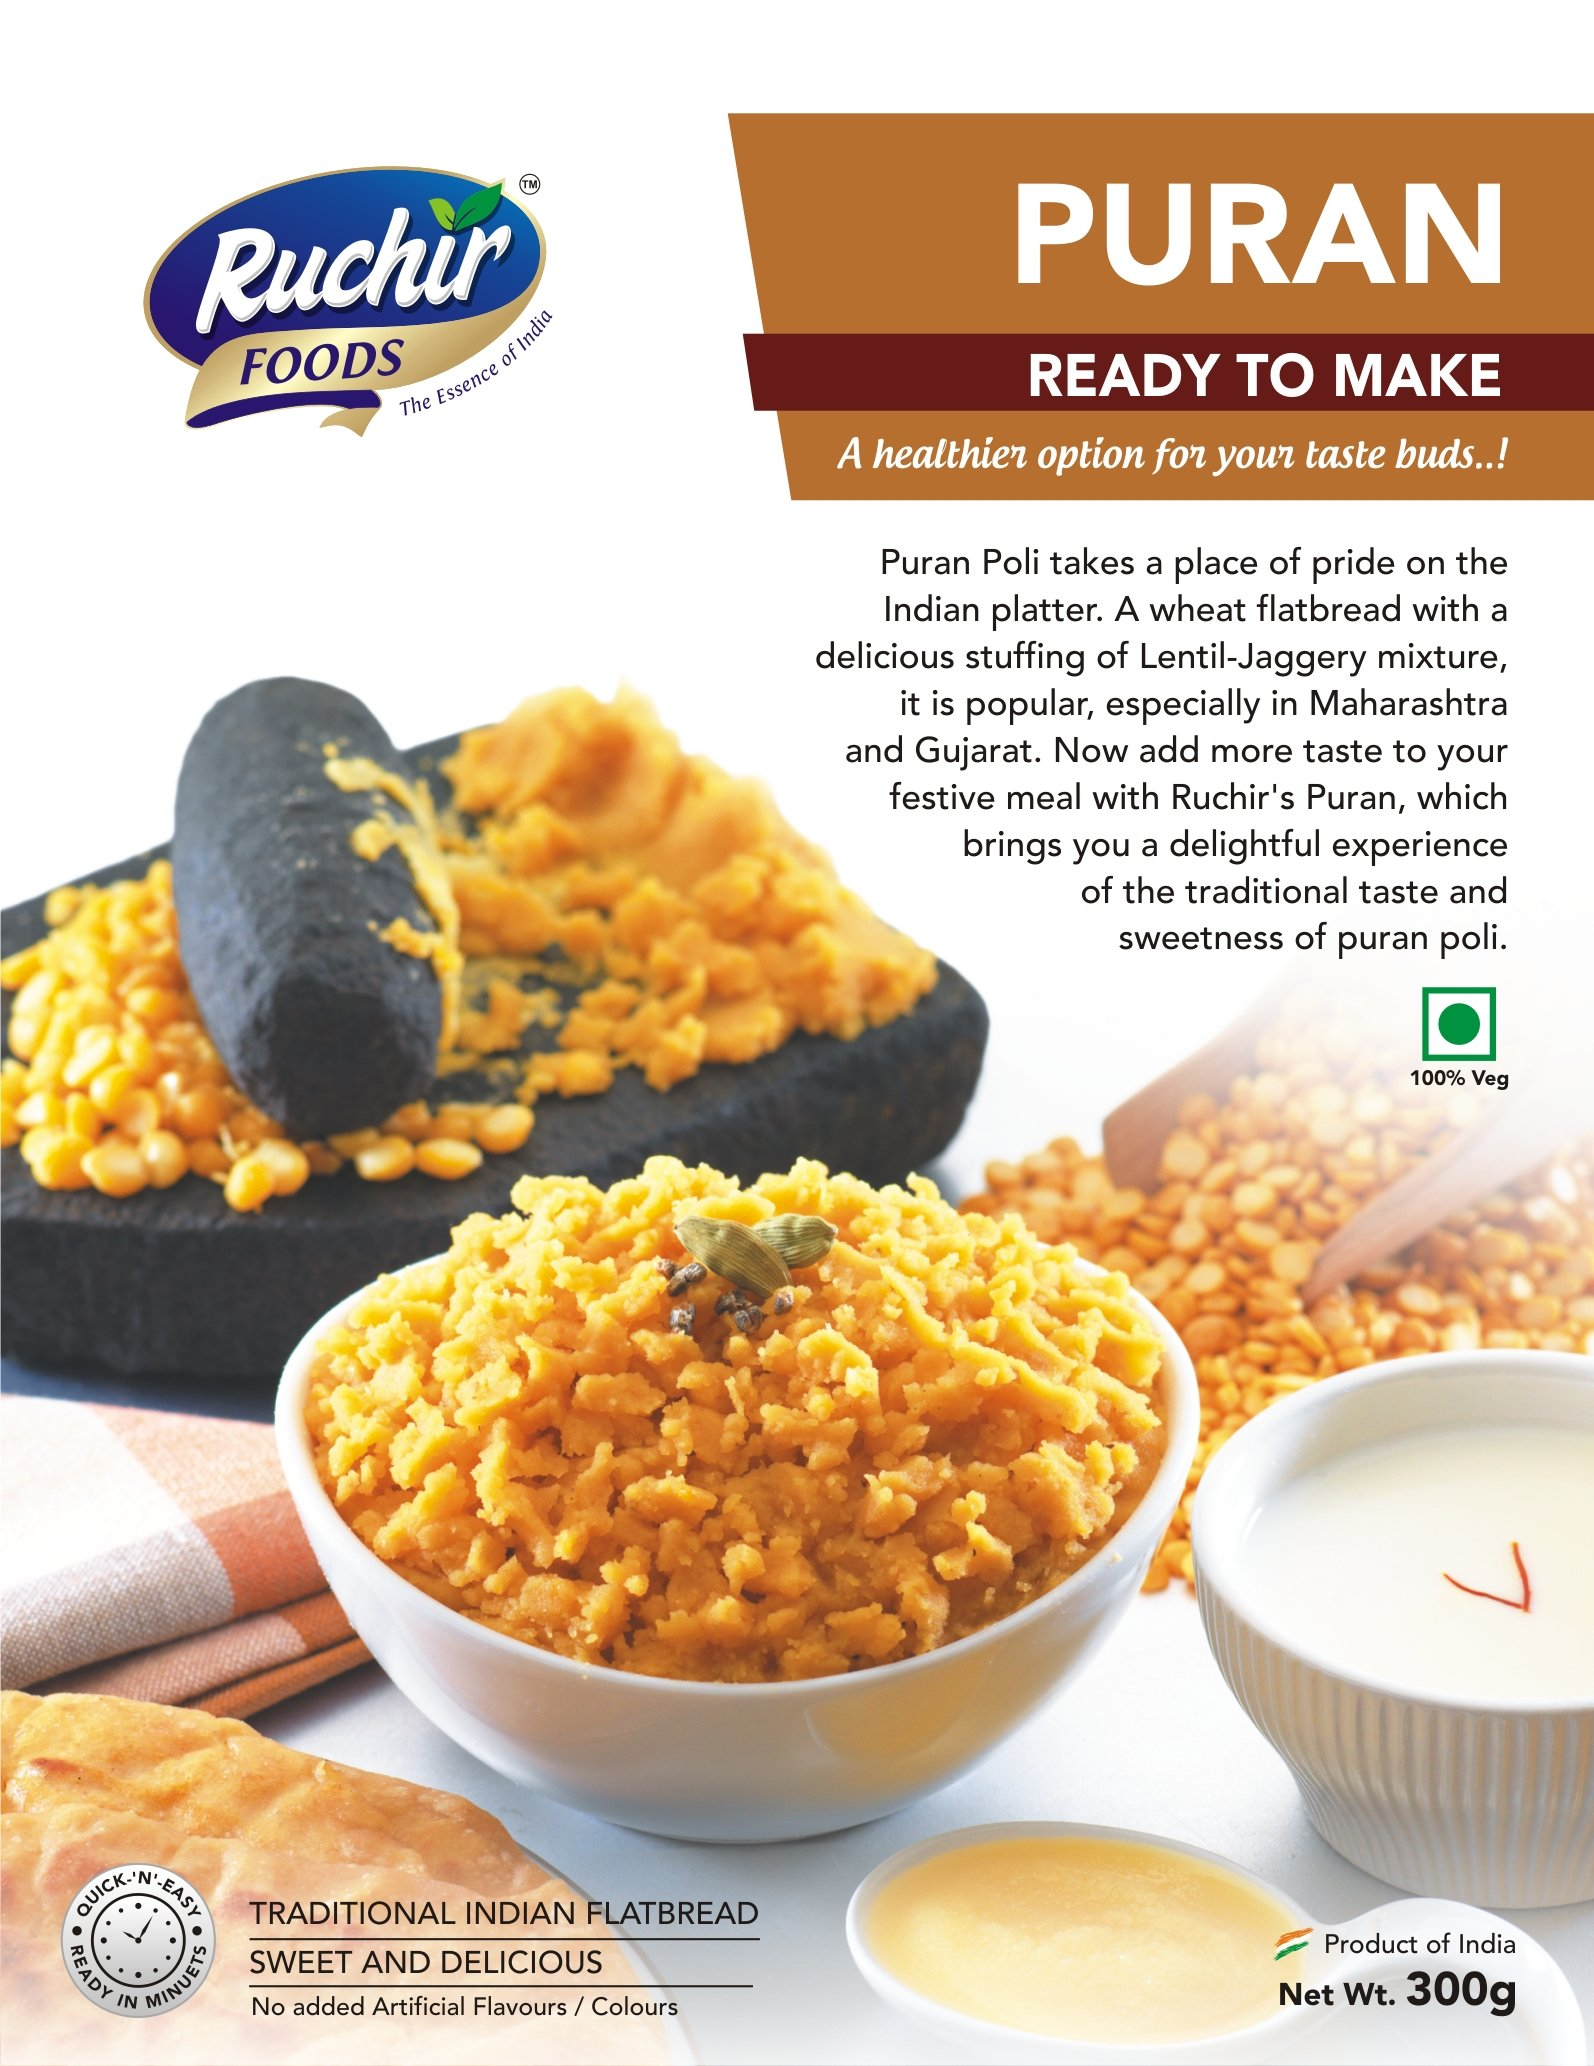 Ruchir Foods Ready to Make Puran - 300gms - Ready to Make, Ready to Cook